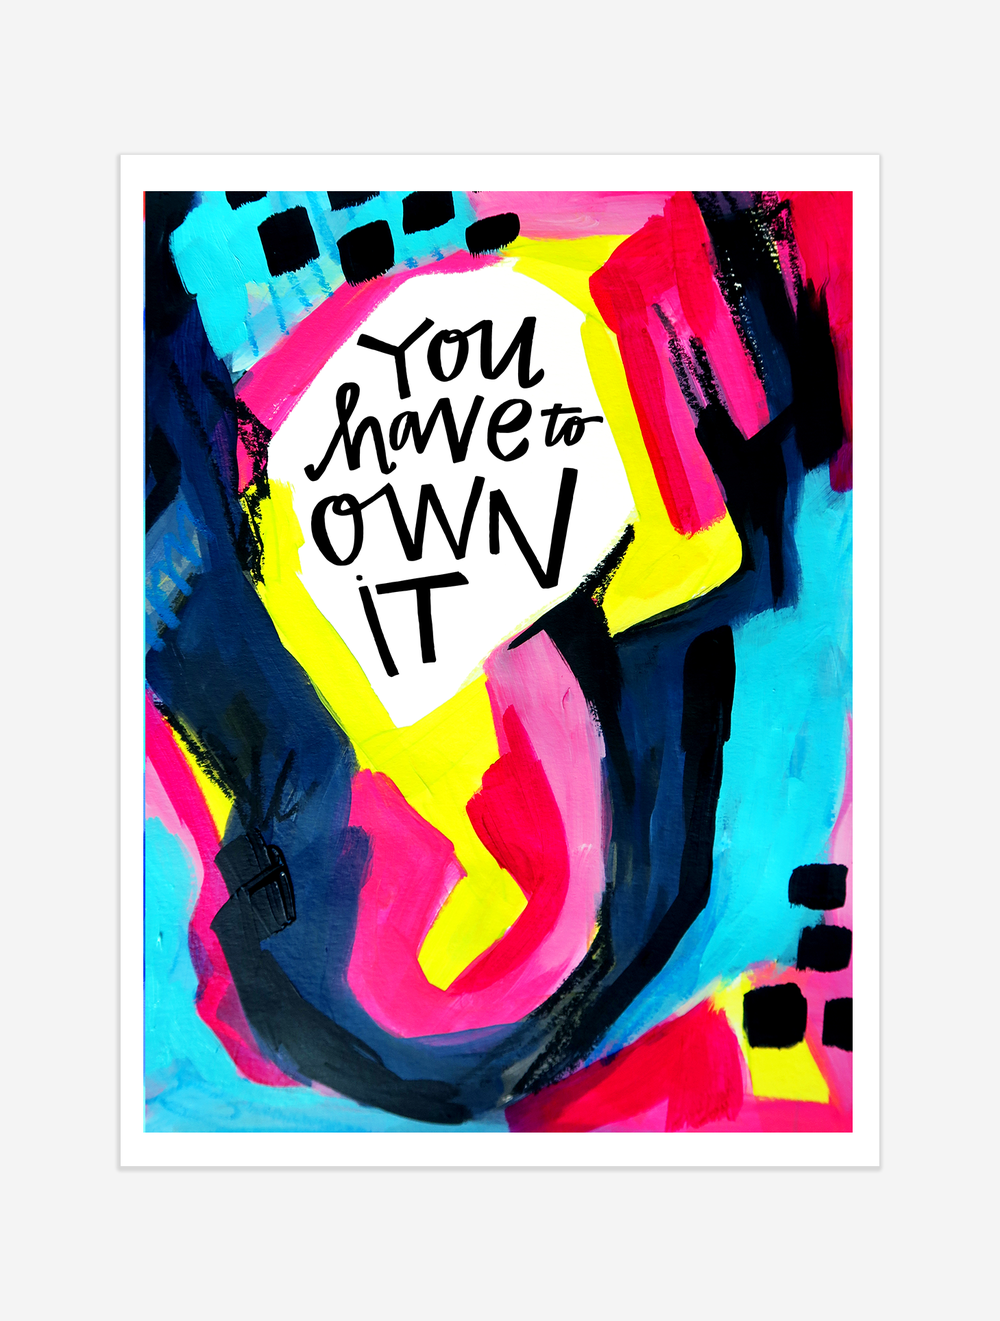 A reminder to live out what you want with confidence and grace and who cares what anybody else thinks! $25 giclee print available at the Made Vibrant Art Shop.